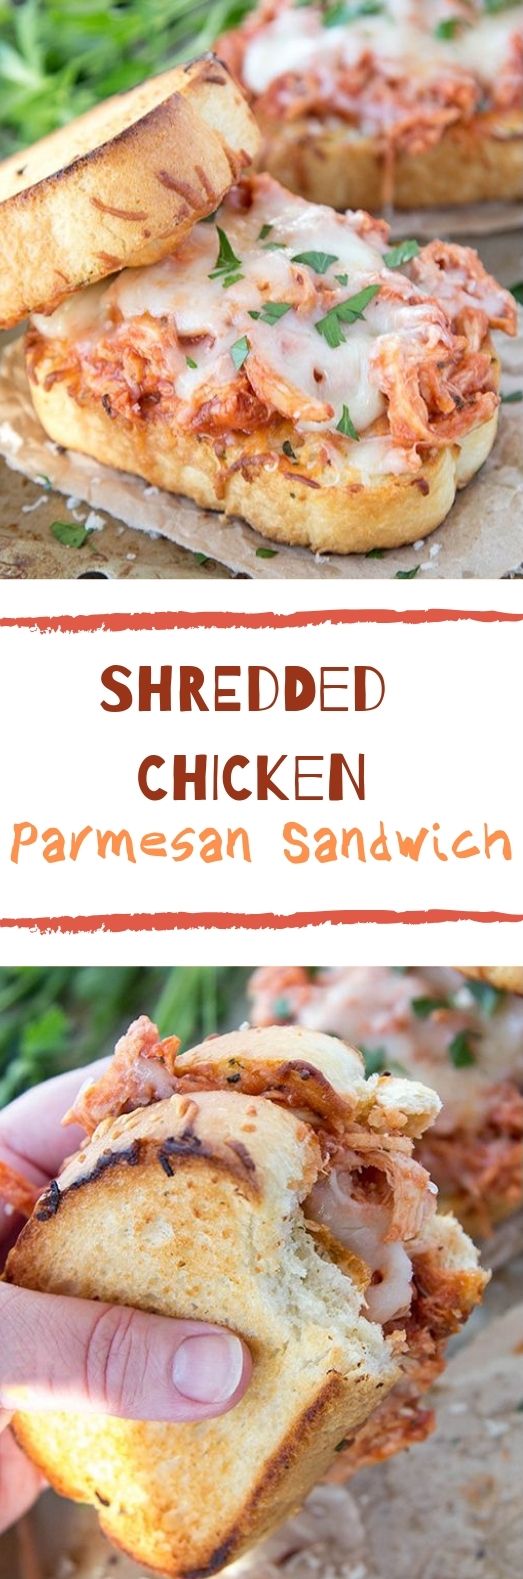 Shredded Chicken Parmesan Sandwich #chicken #dinner